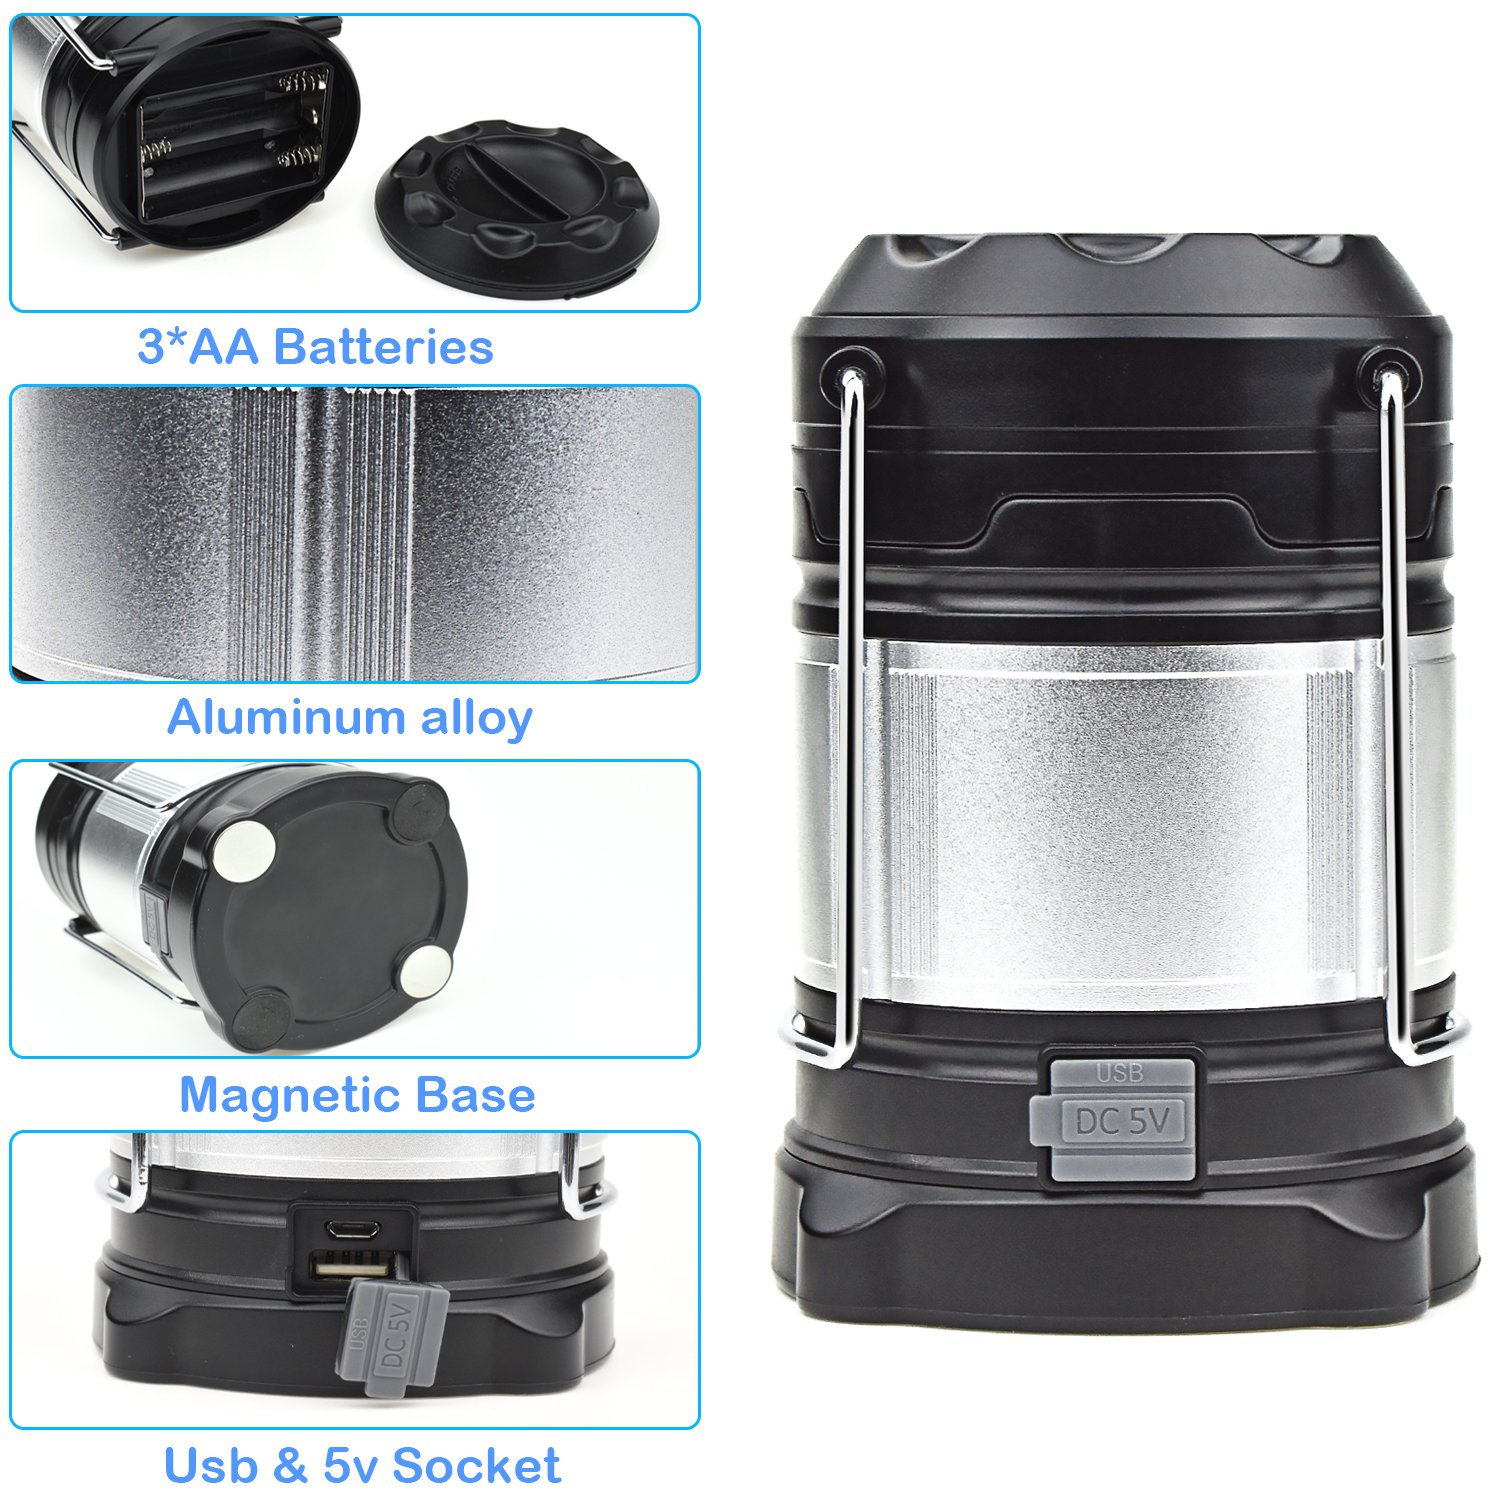 Alcoon 2 Packs Rechargeable LED Camping Lantern Light Lamp with 5600mAh Power Bank, Portable Collapsible Waterproof Outdoor Light with 18650 Li-ion Batteries for Camping Traveling Tent, Emergency by Alcoon (Image #4)